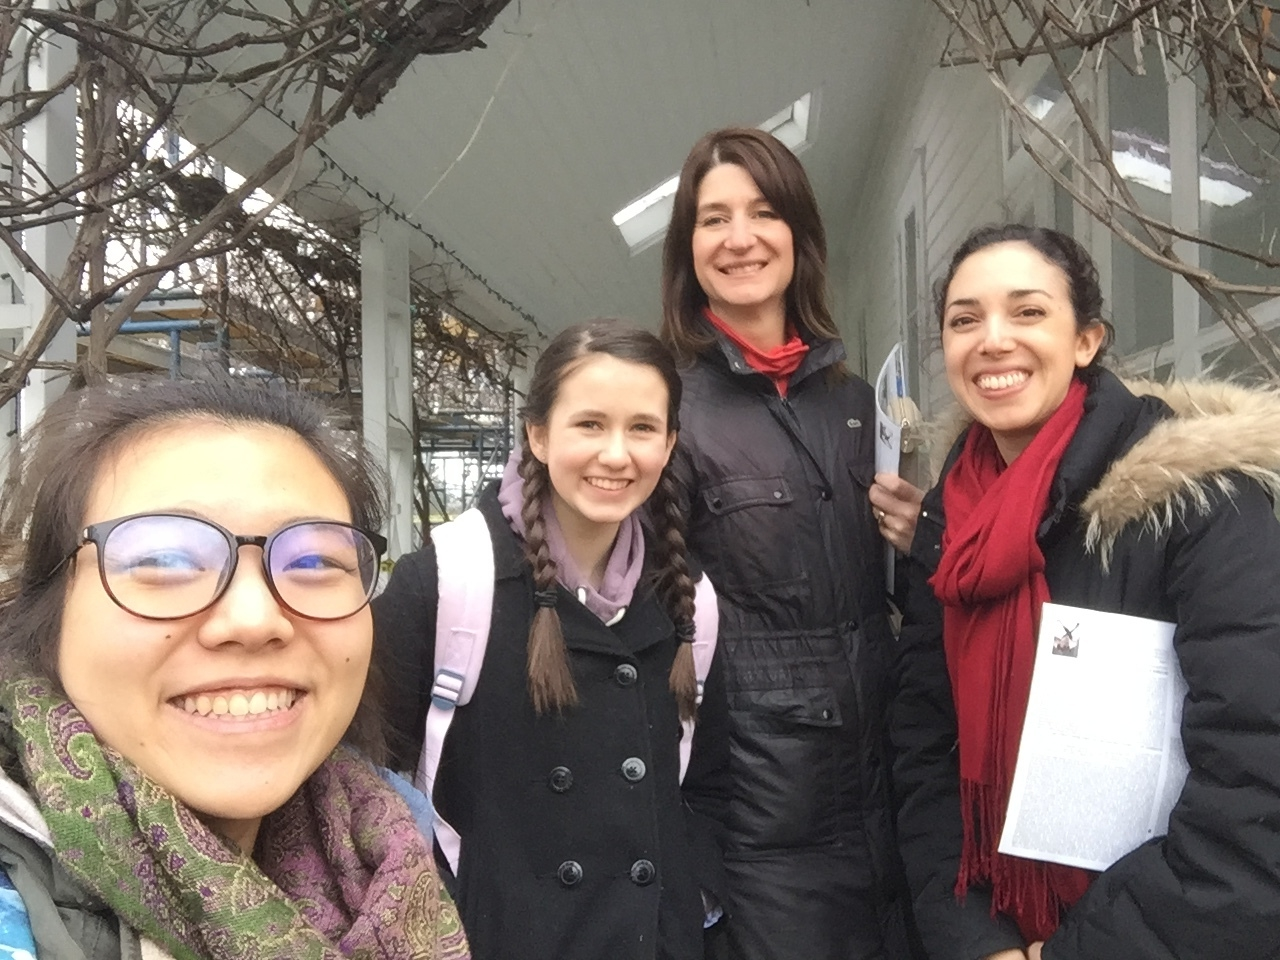 [Left to Right] Irene Paibulsirijit, Jordyn Taylor, Heather Weitzel and Maya Gupta visiting Eldon House.